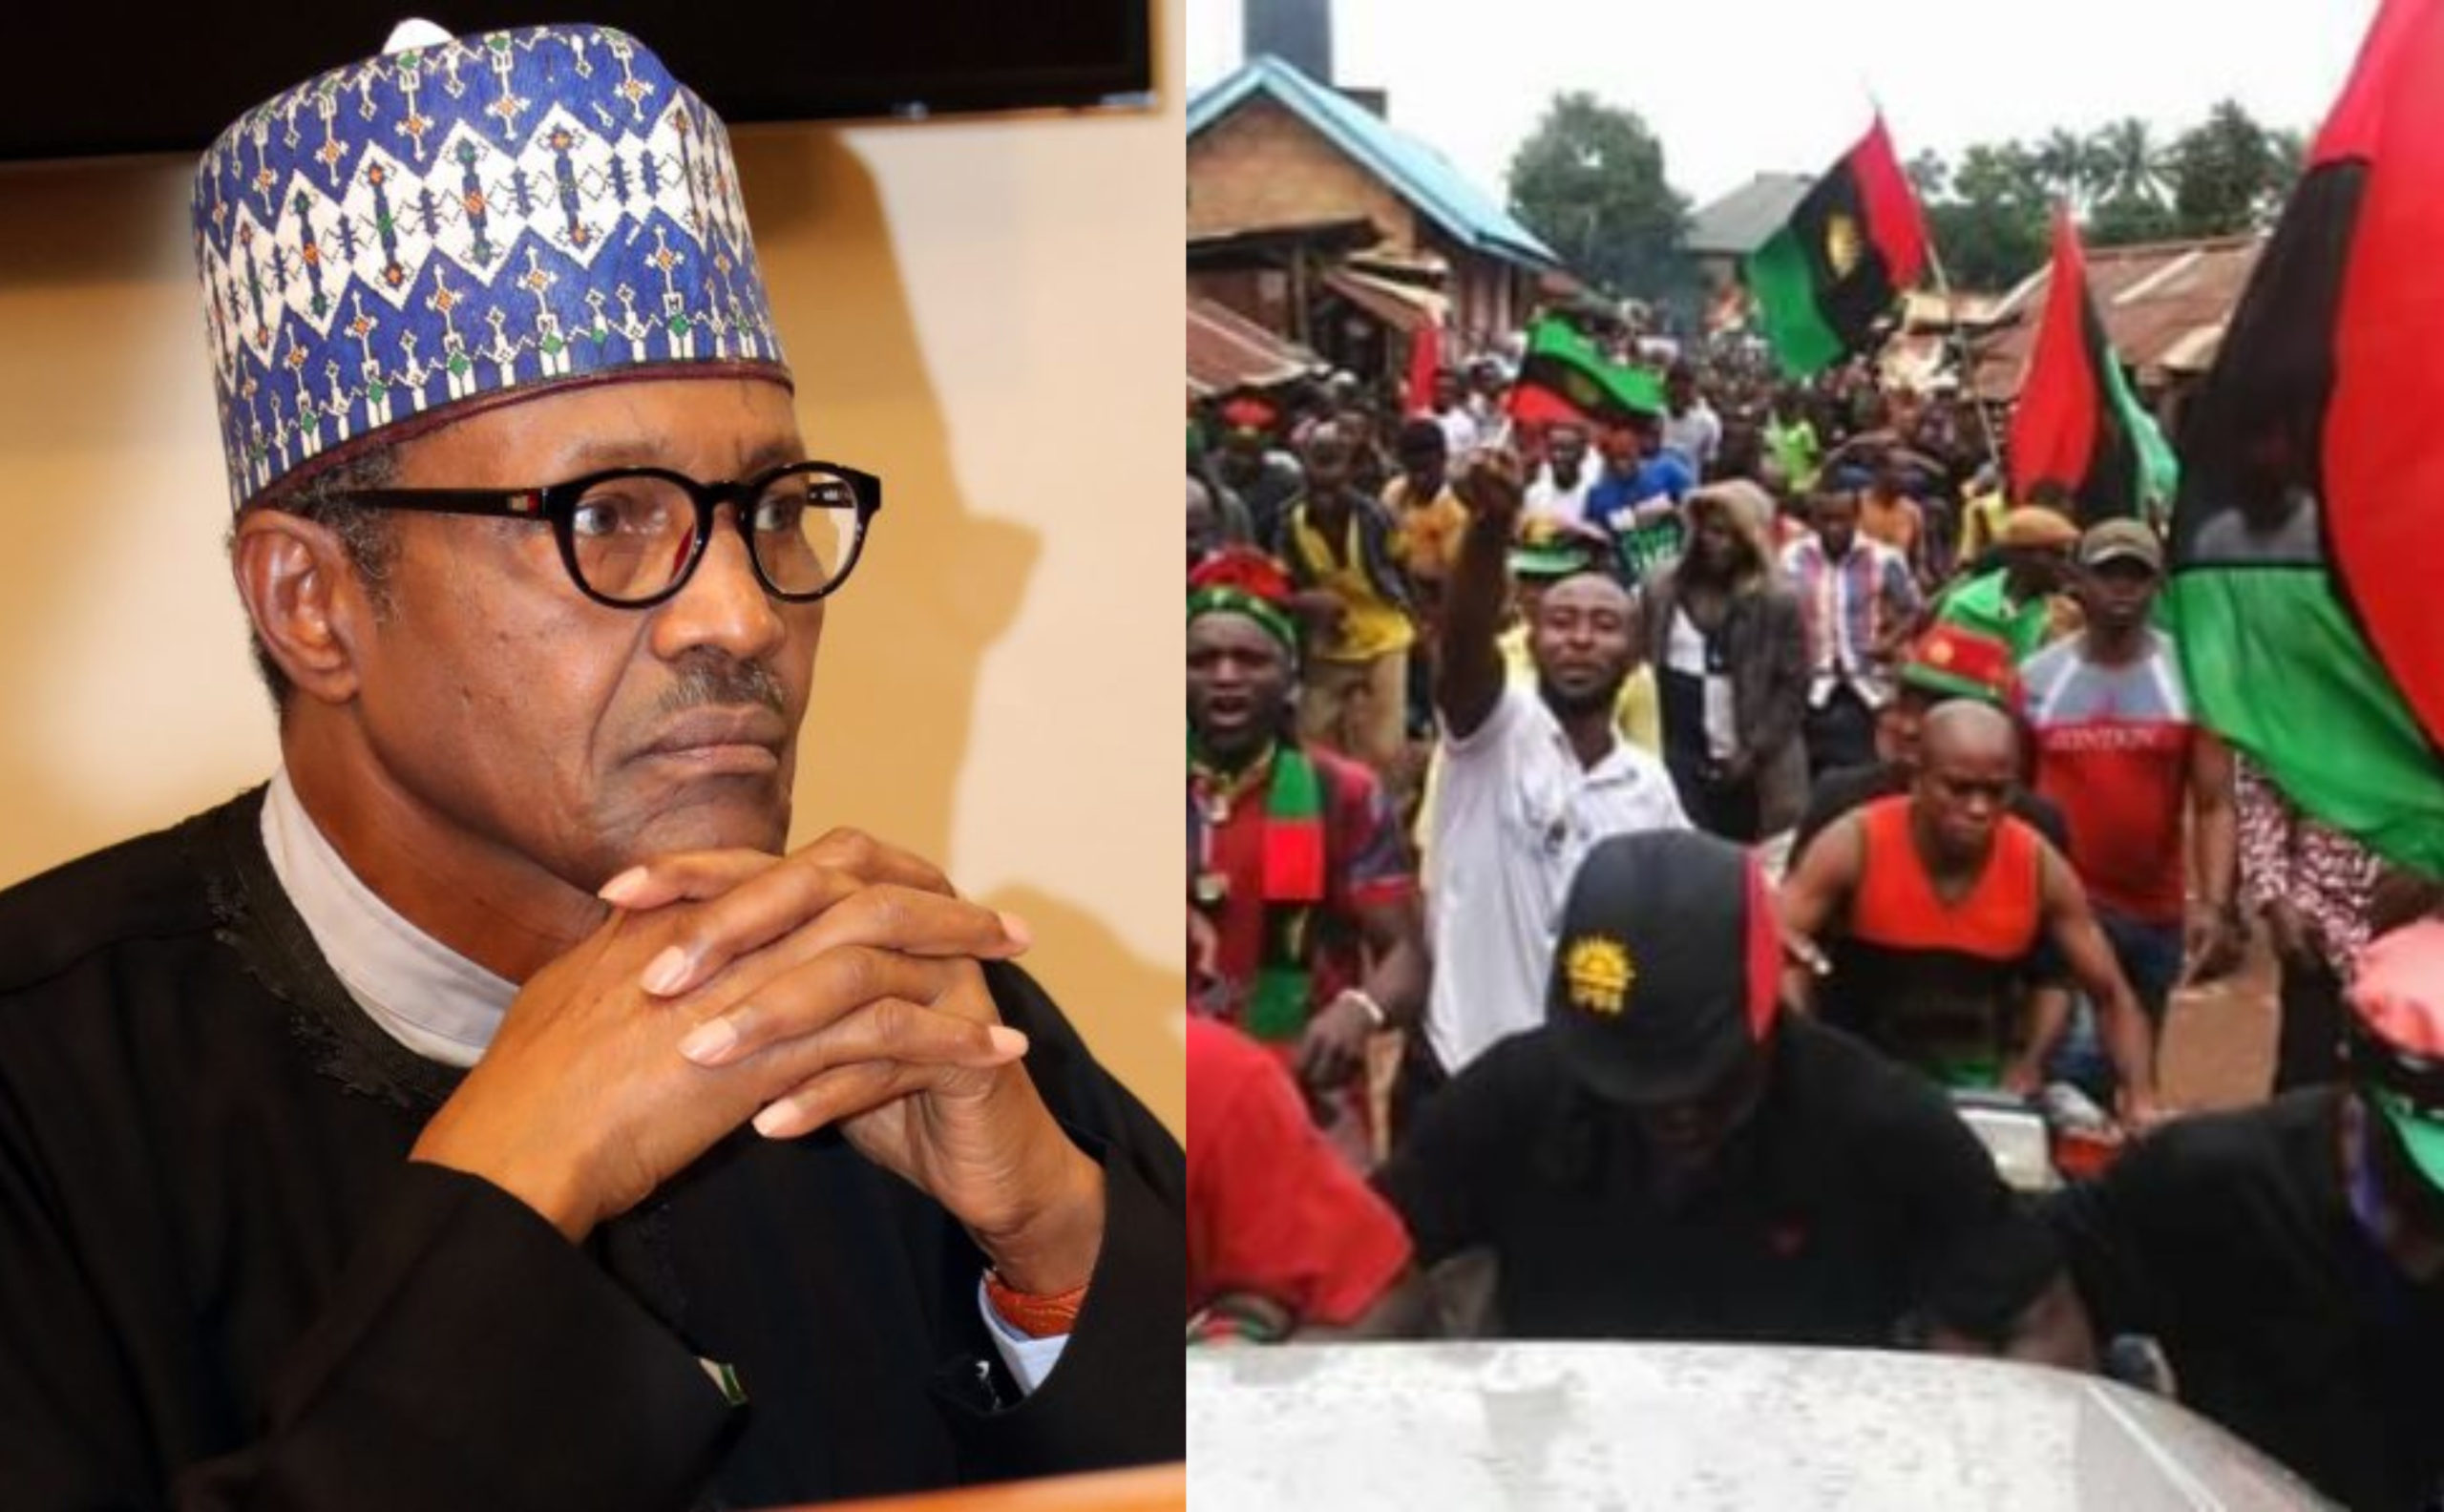 IPOB IS USING CHRISTIANITY TO WAGE WAR AGAINST NIGERIAN STATE – PRESIDENCY